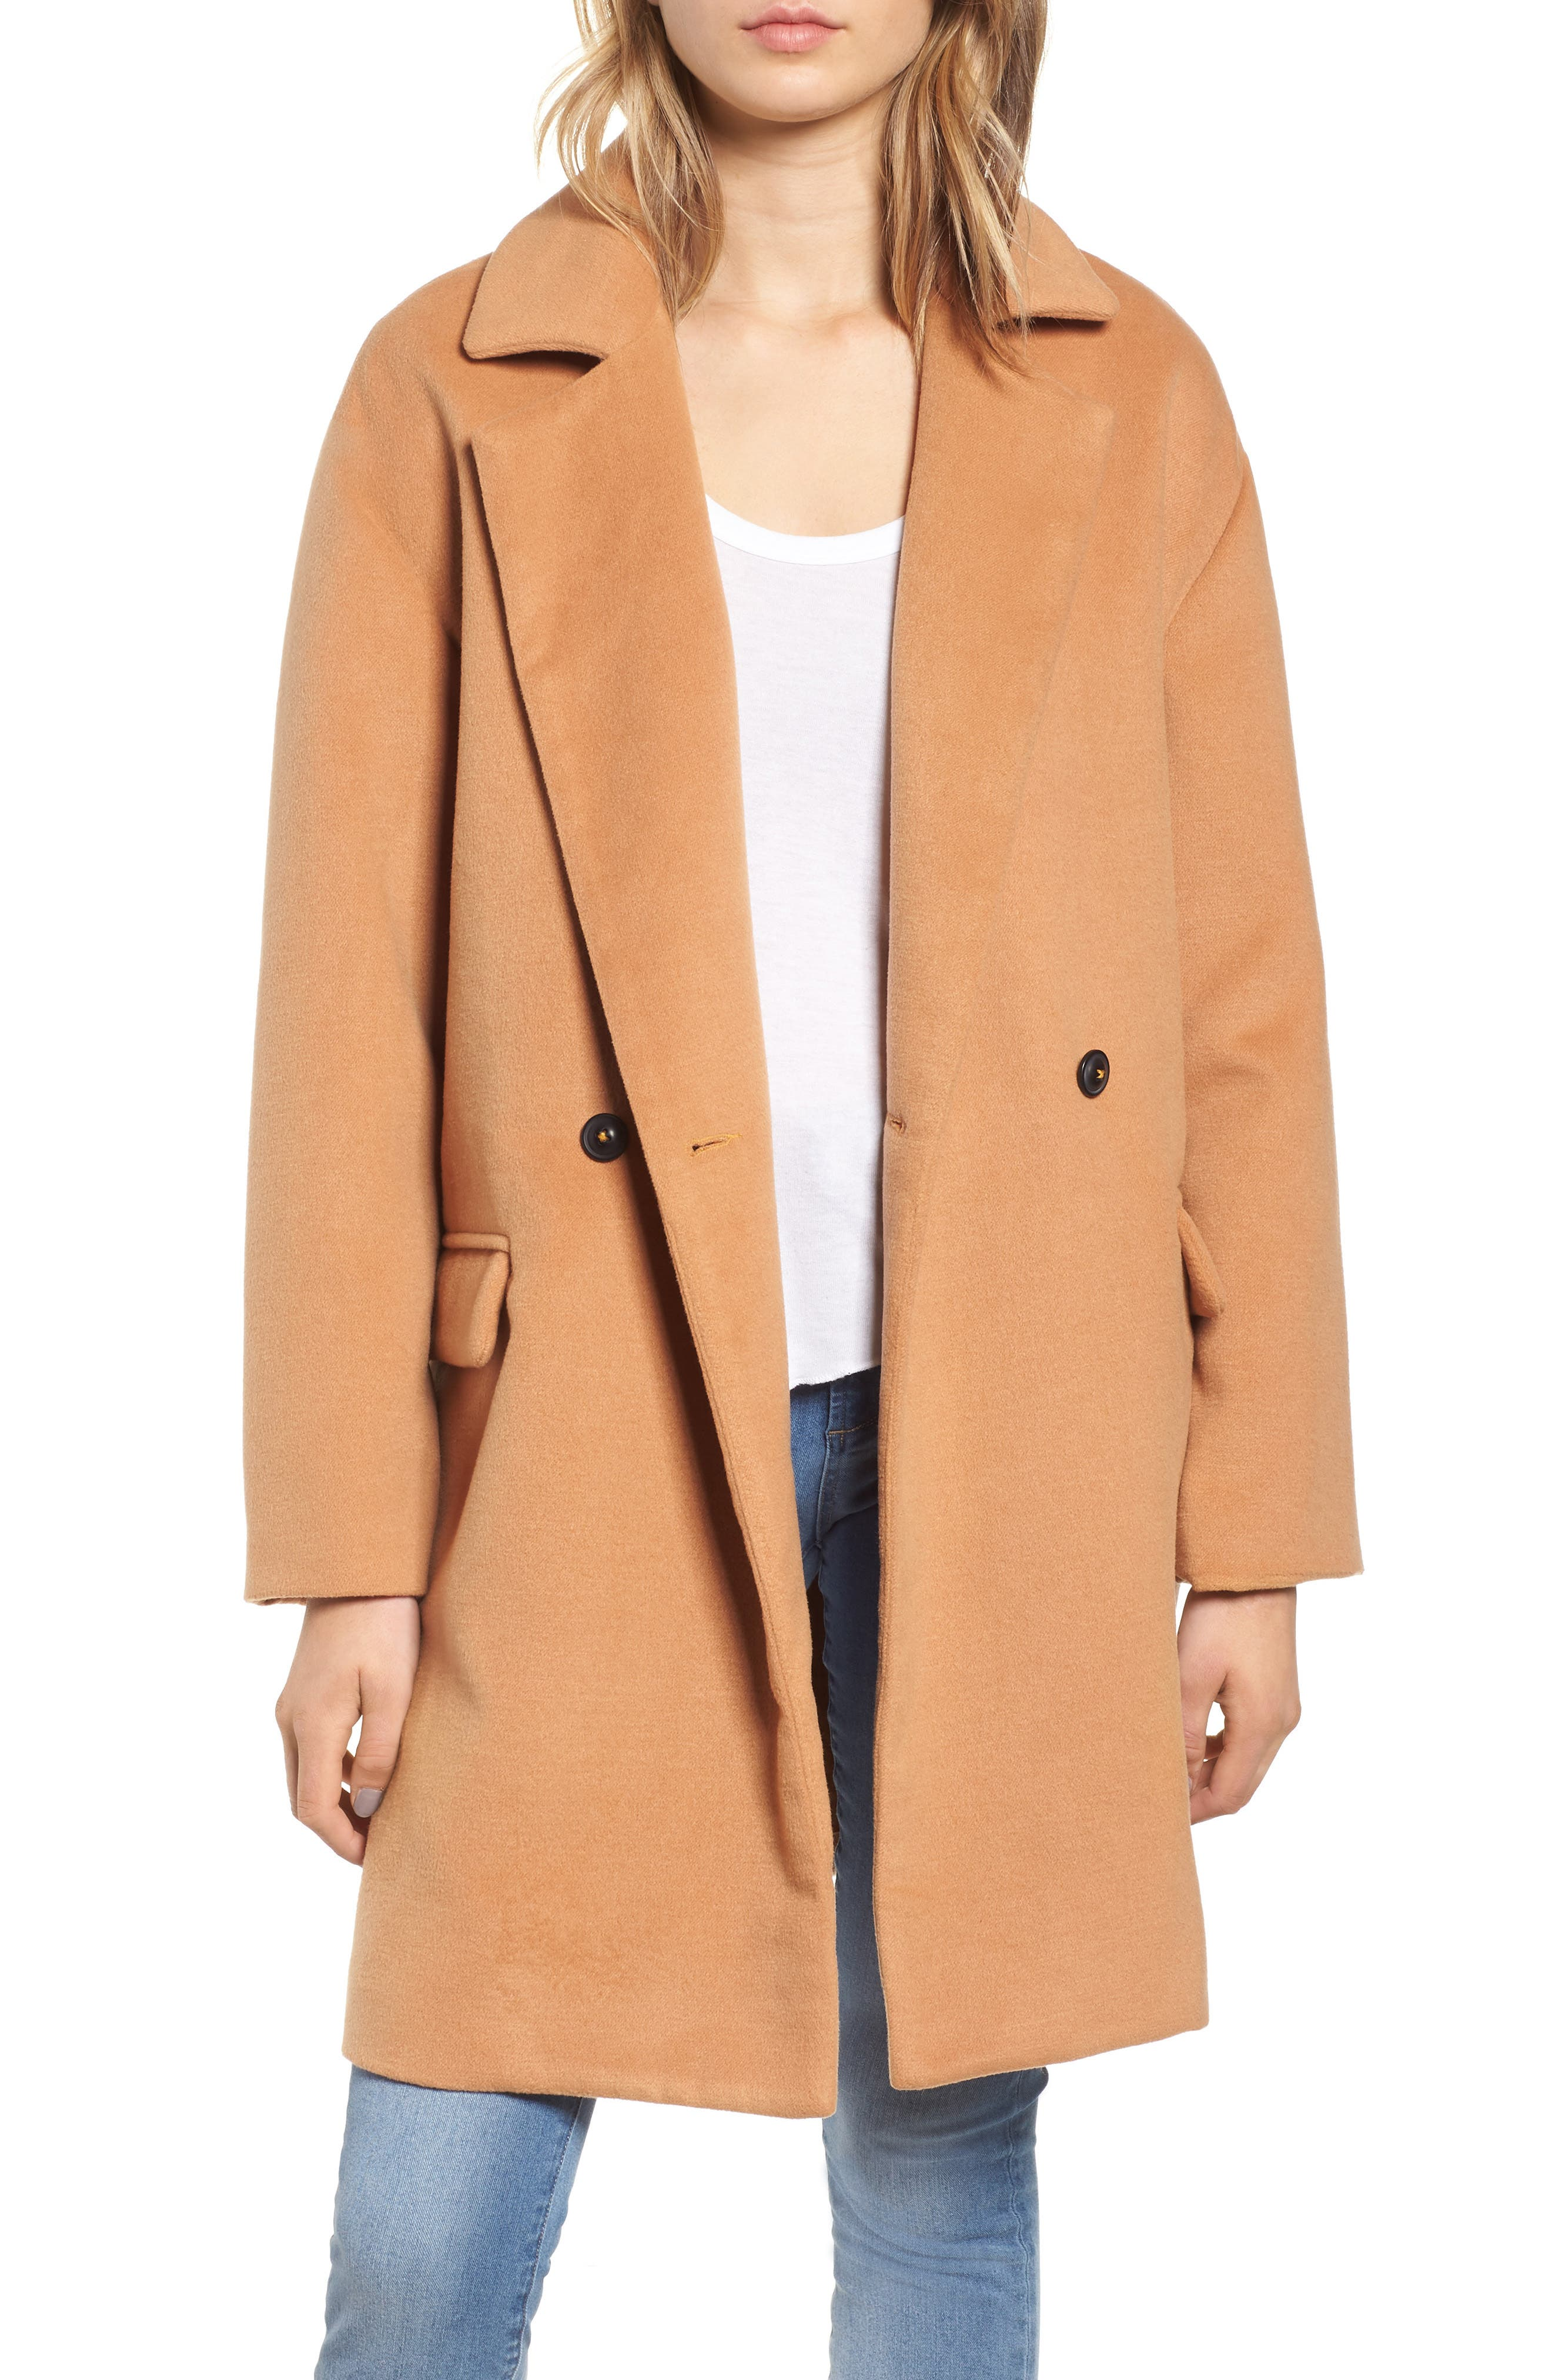 Oversize Double Breasted Coat,                             Main thumbnail 1, color,                             230